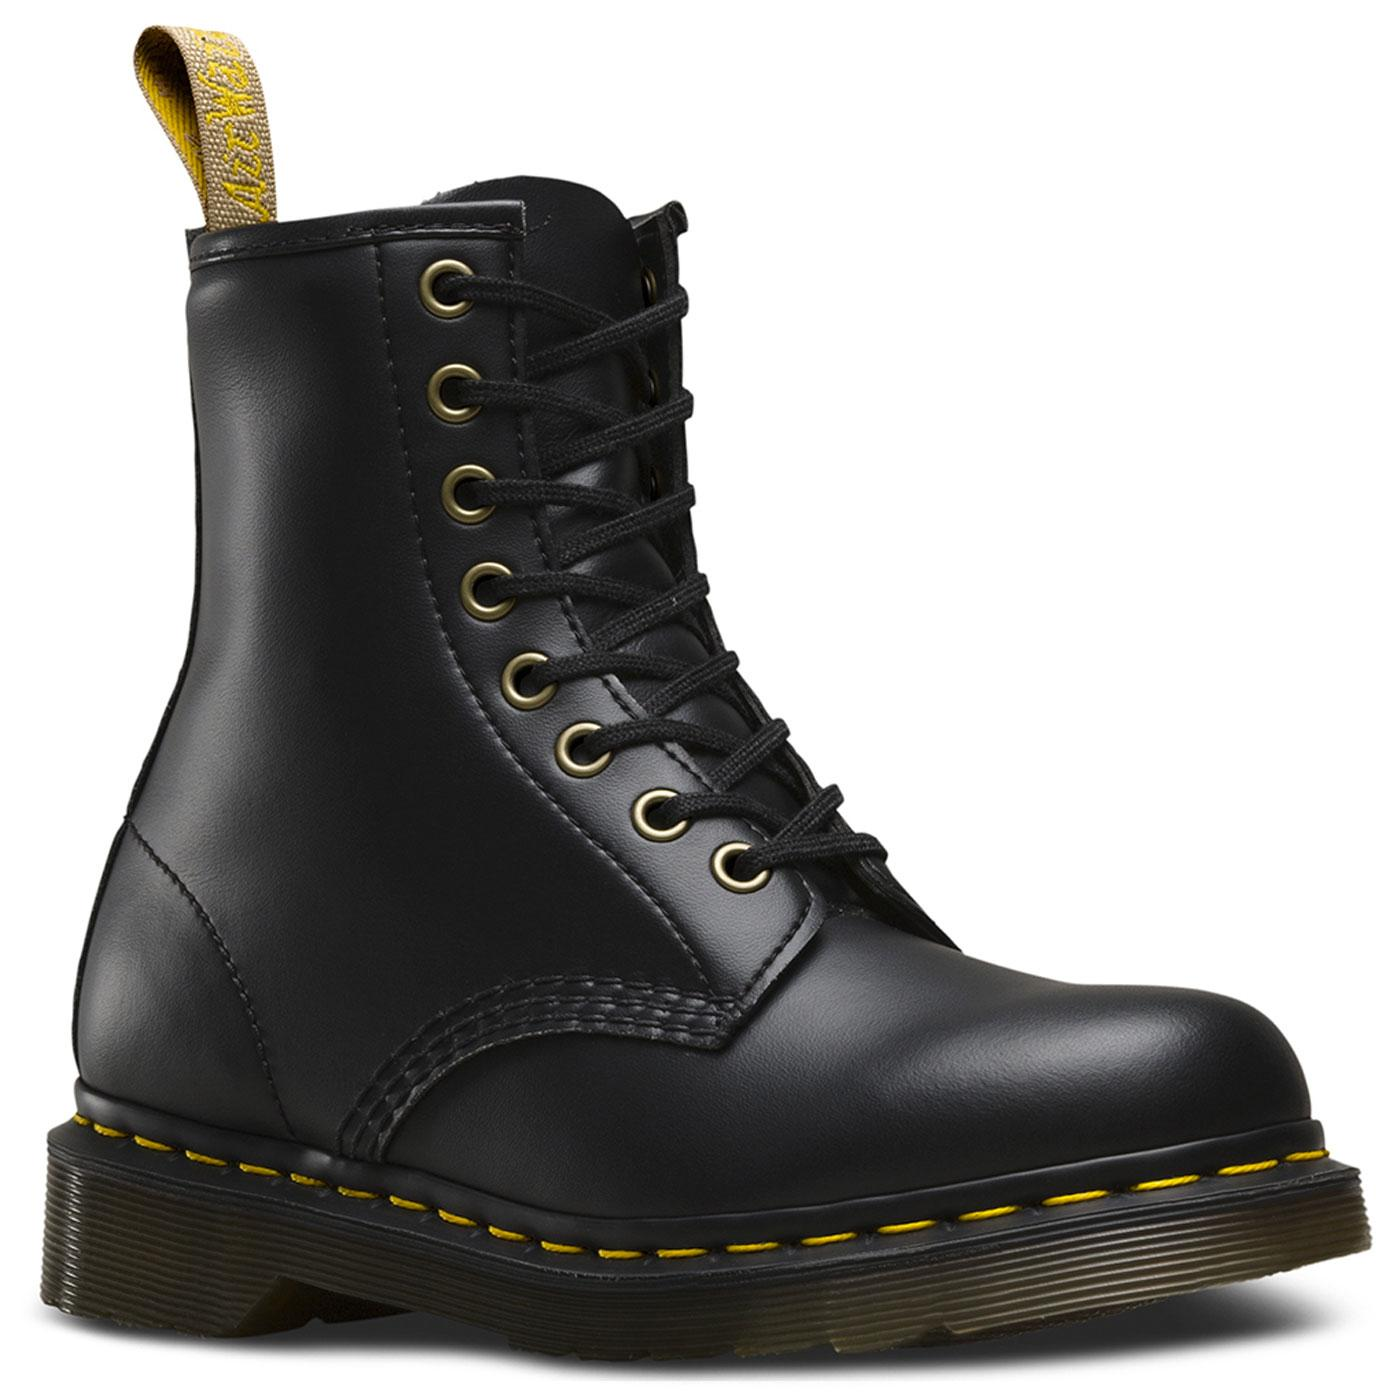 Vegan 1460 DR MARTENS Vintage Felix Rub Off Black